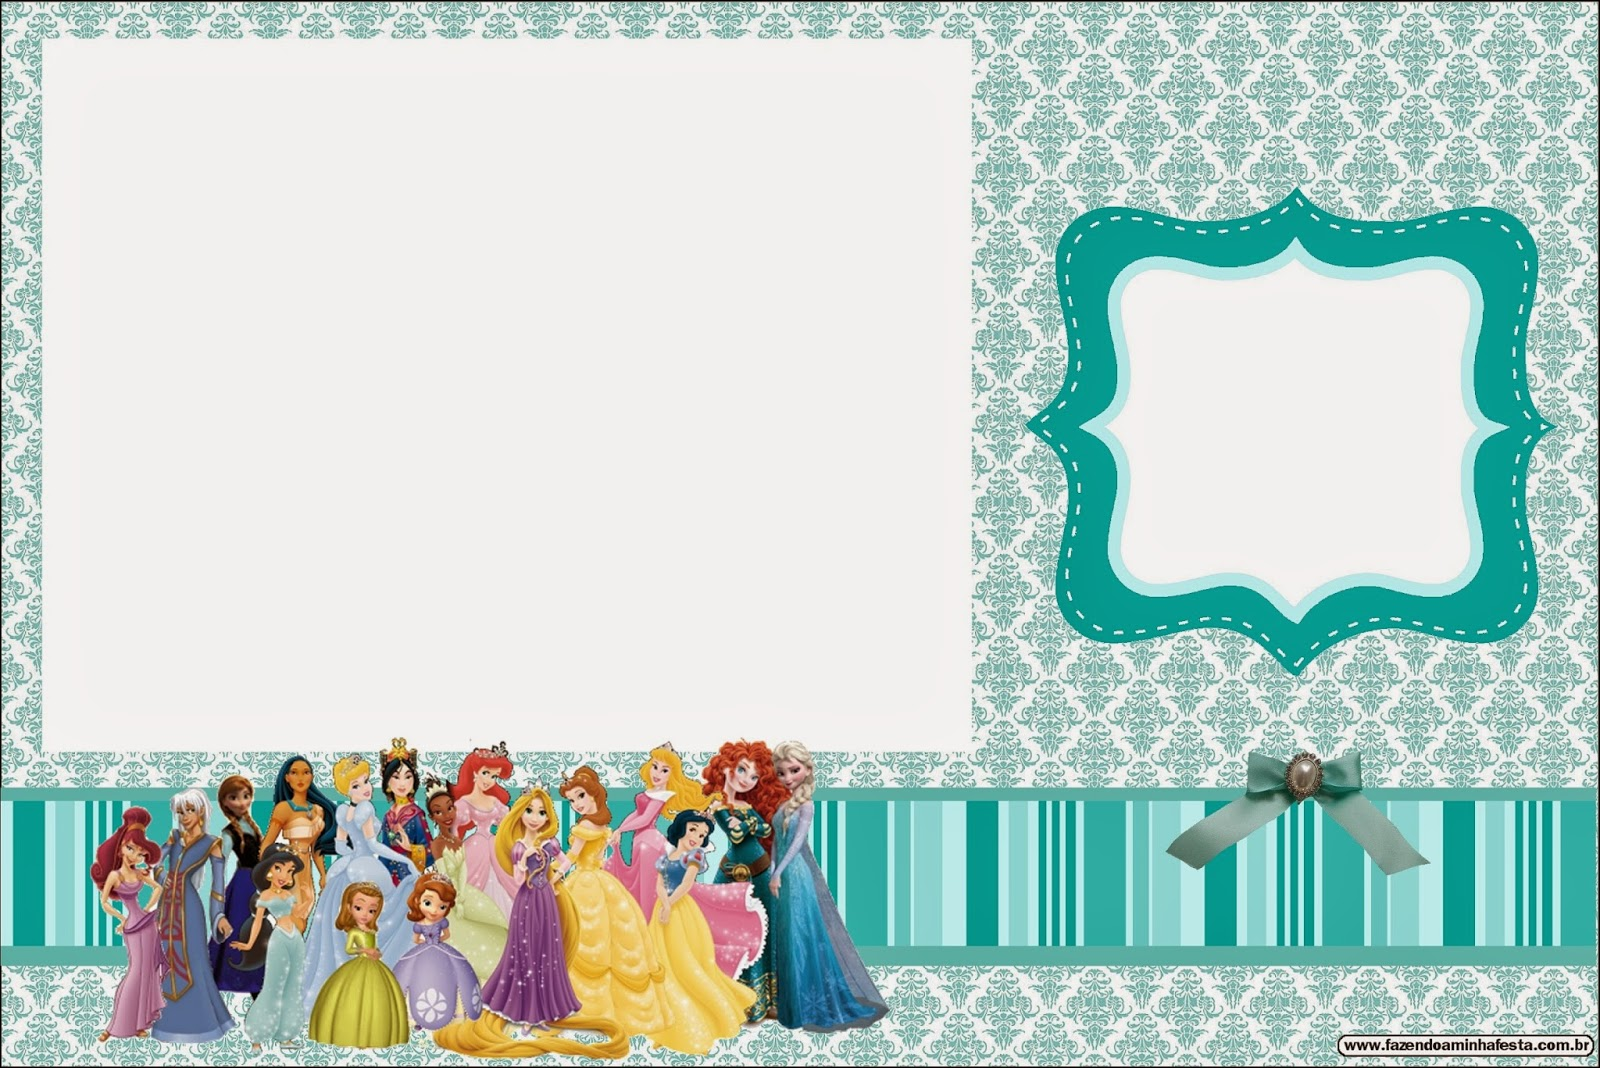 All Disney Princess Free Printable Invitations – Disney Princess Printable Birthday Cards